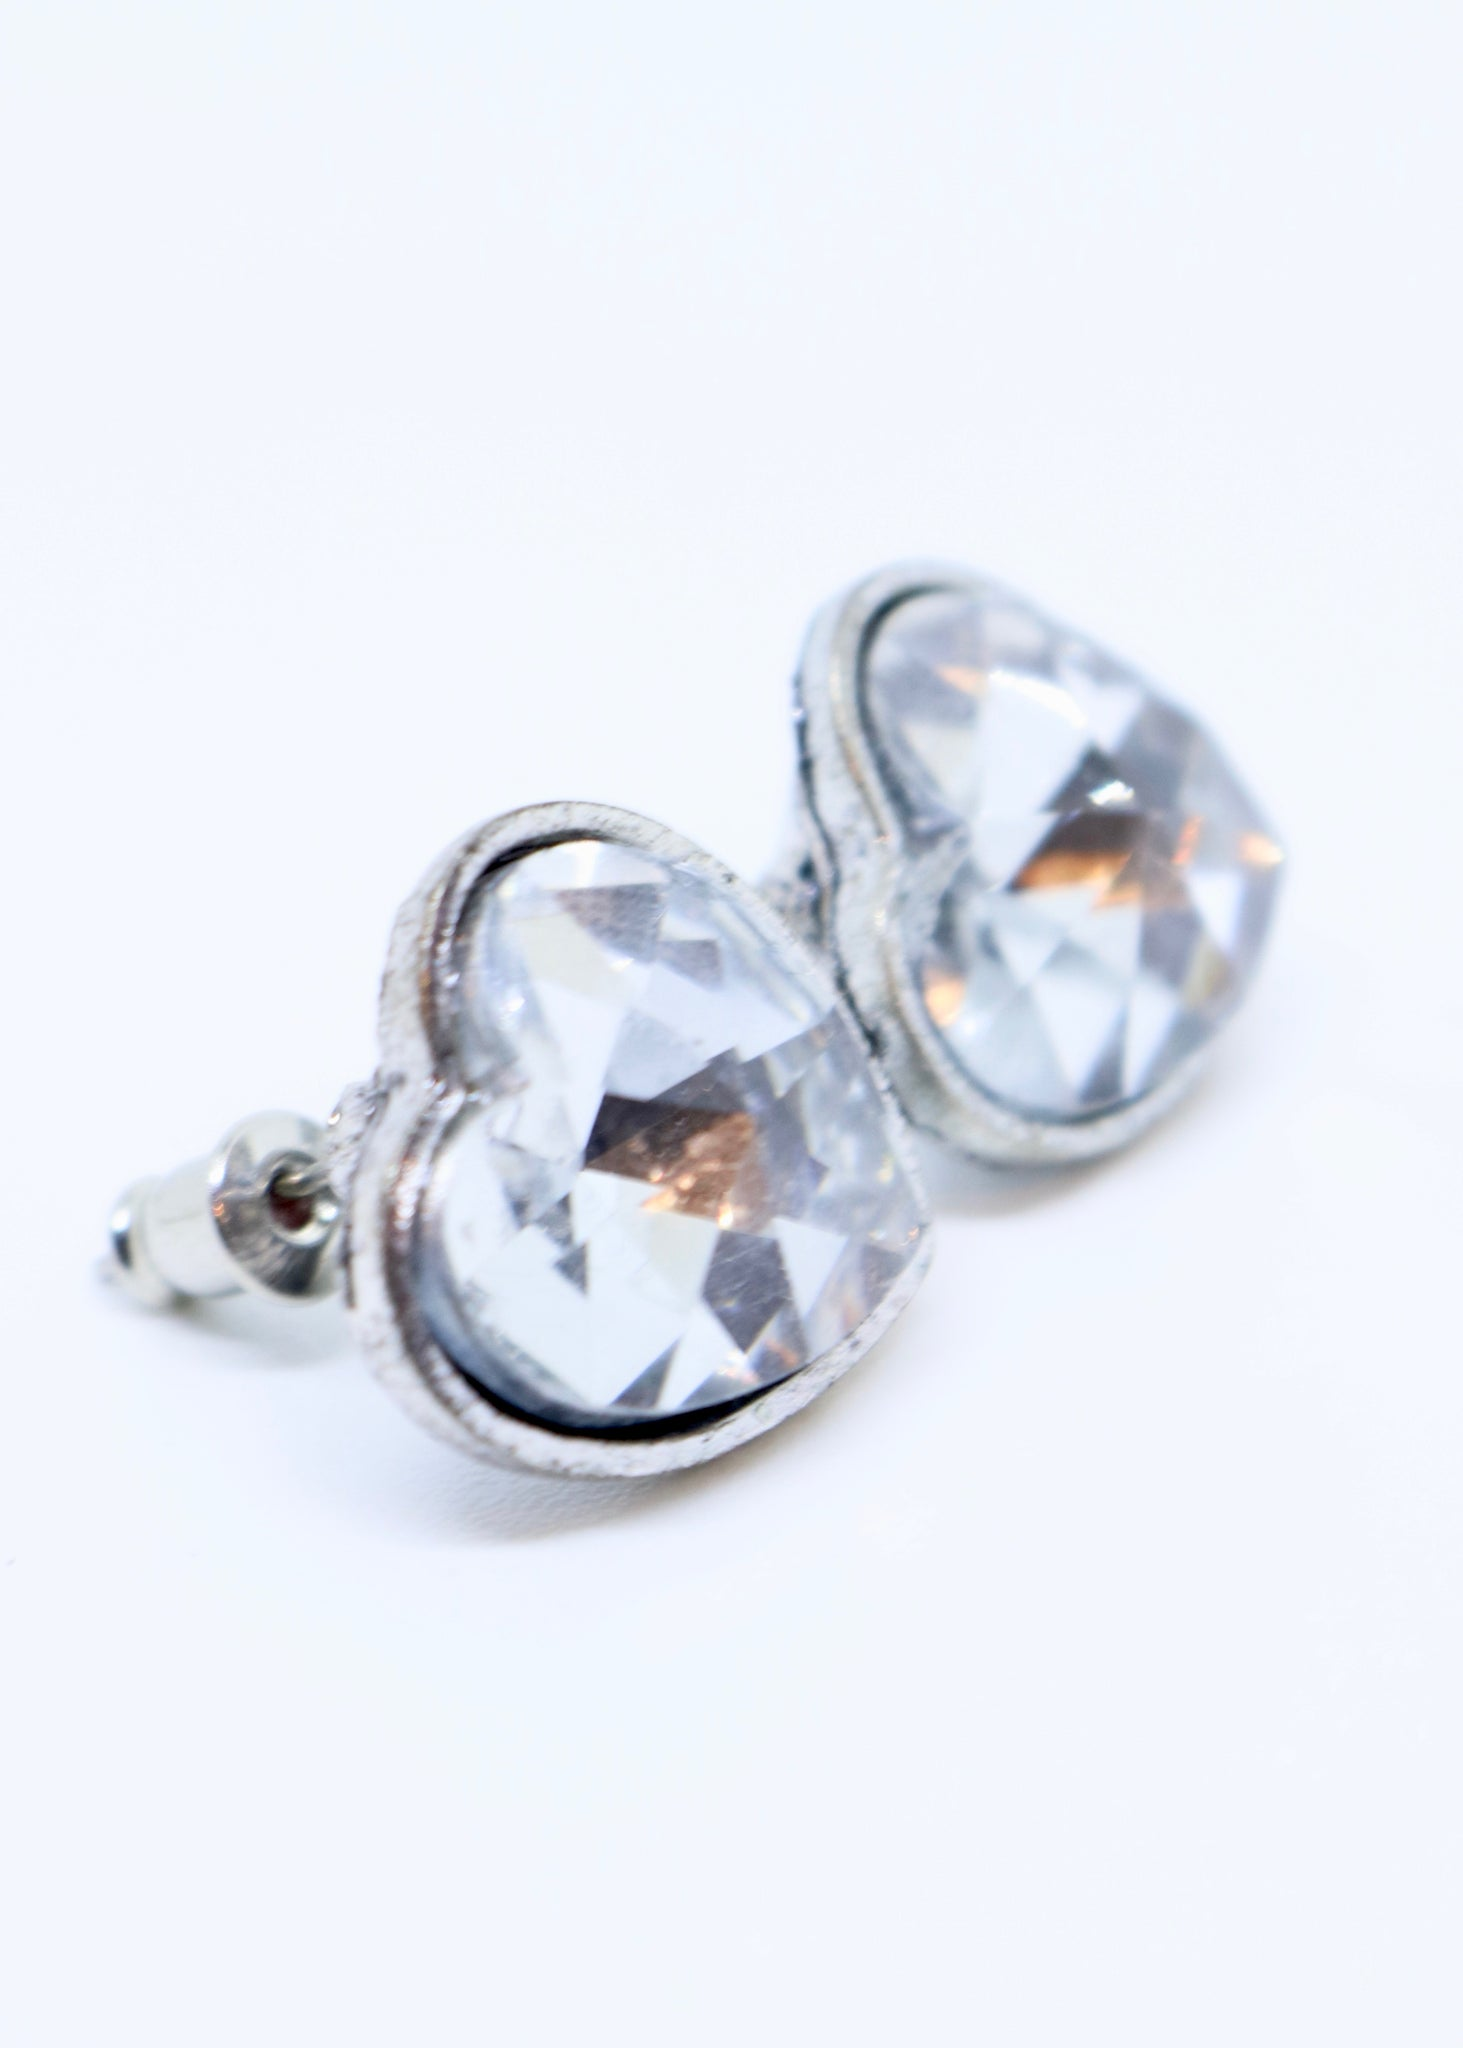 Limited Edition Heart Shaped Stone Earrings Silver Coloured - By Feathers Of Italy - Feathers Of Italy